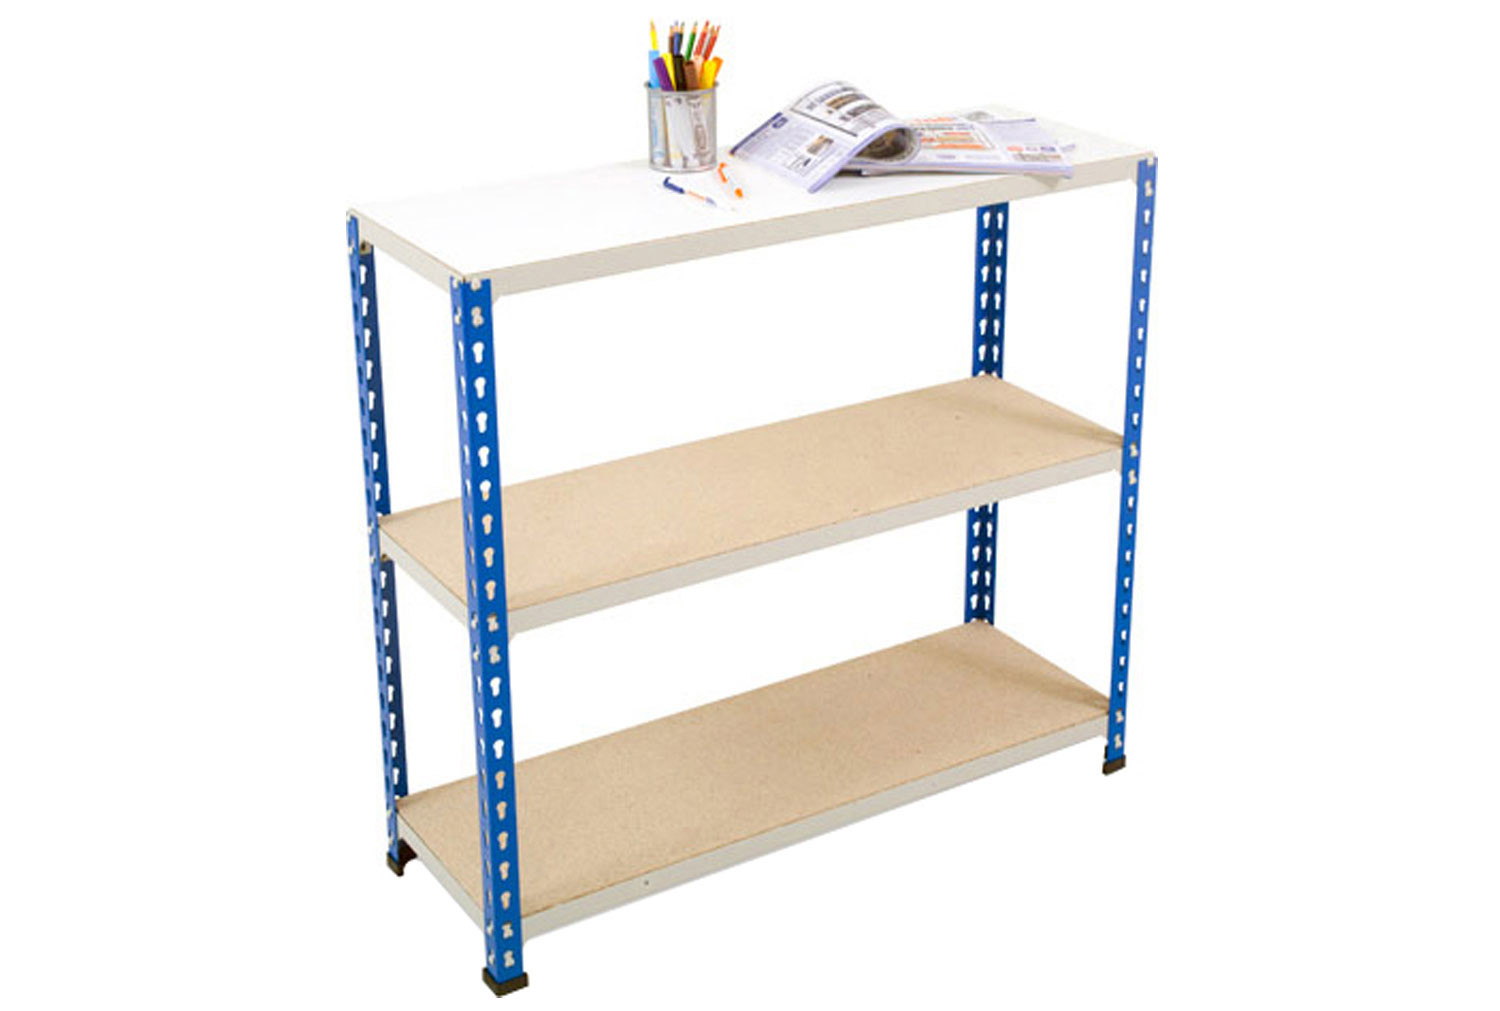 Rapid 2 Shelving With 3 Chipboard Shelves 915wx990h (Blue/Grey)